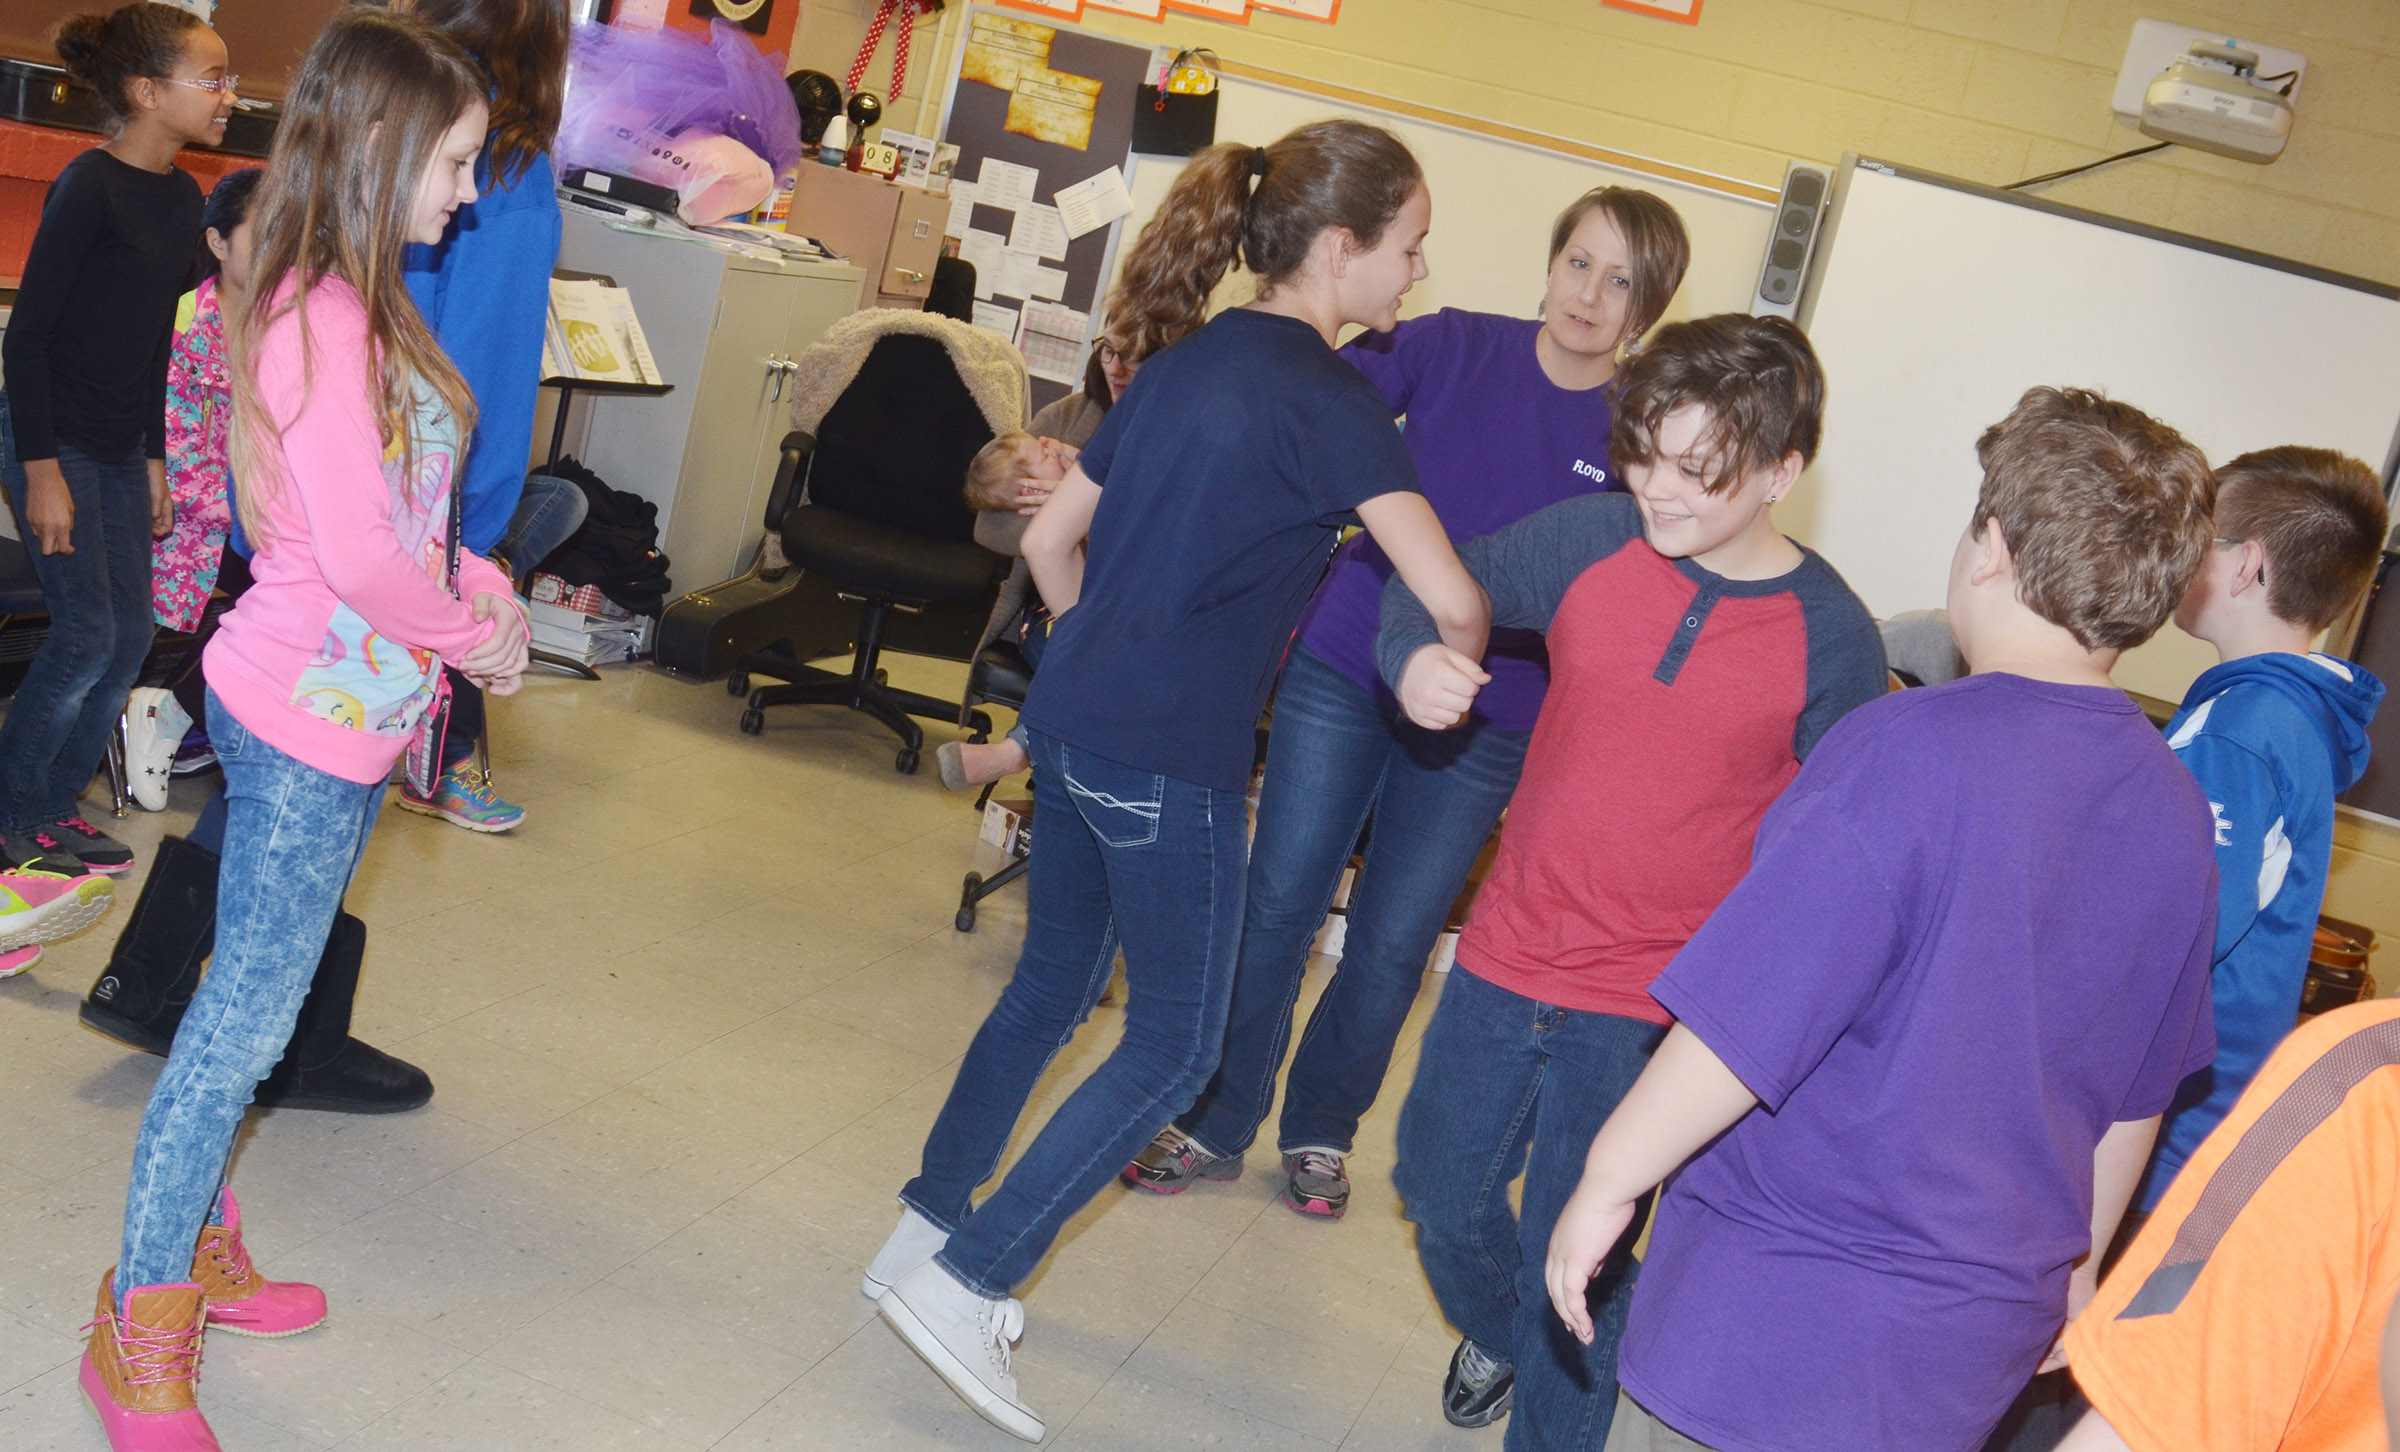 CMS music teacher Jessica Floyd helps her students, sixth-grader Haylee Allen and fifth-grader Kayden Birdwell, learn to square dance.